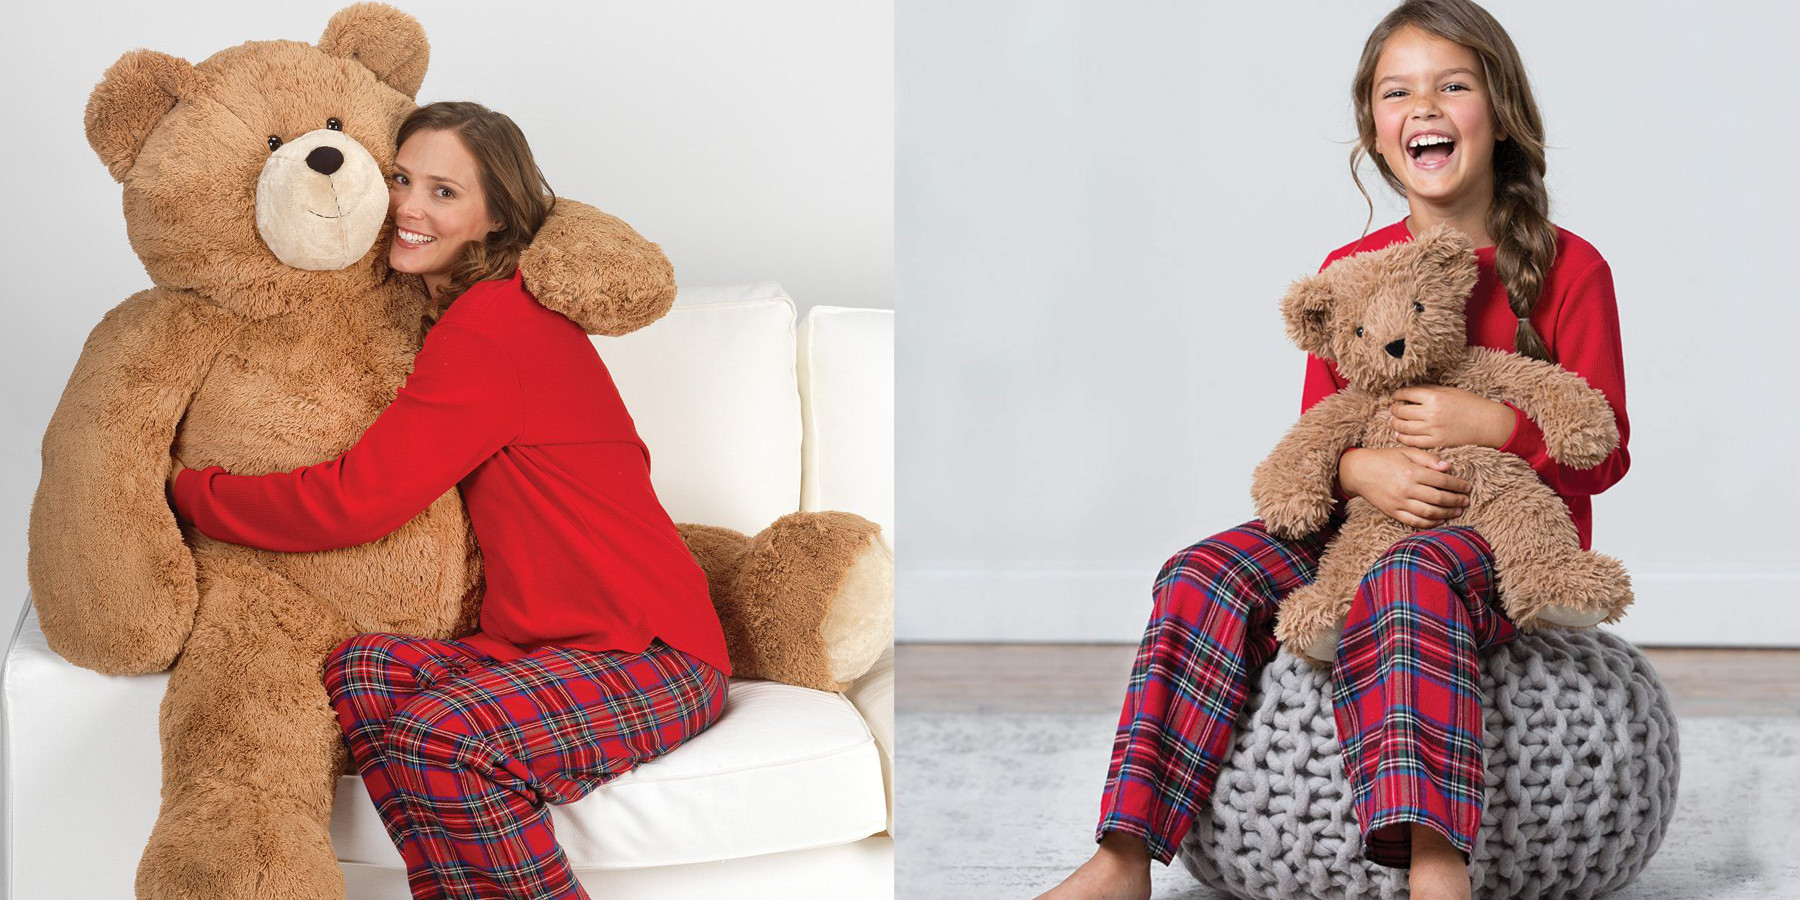 Amazon 1-day Teddy Bear Valentine's Day Sale from $22.50 w/ options up to 4-feet tall